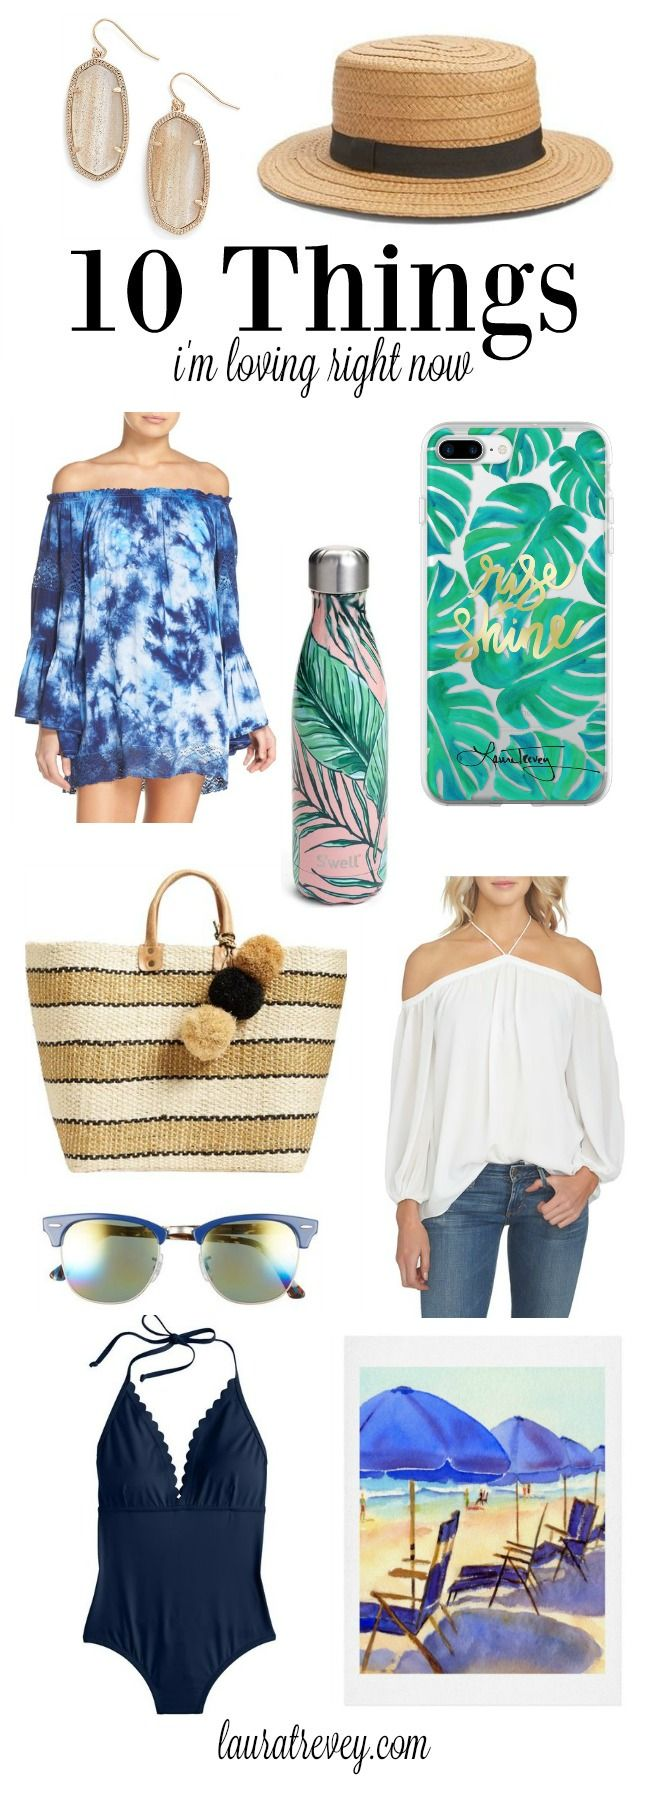 Being by the ocean brings me so much joy and happiness. To go with my current coastal vibes, here are 10 things I'm loving right now. Instagram @lauratrevey